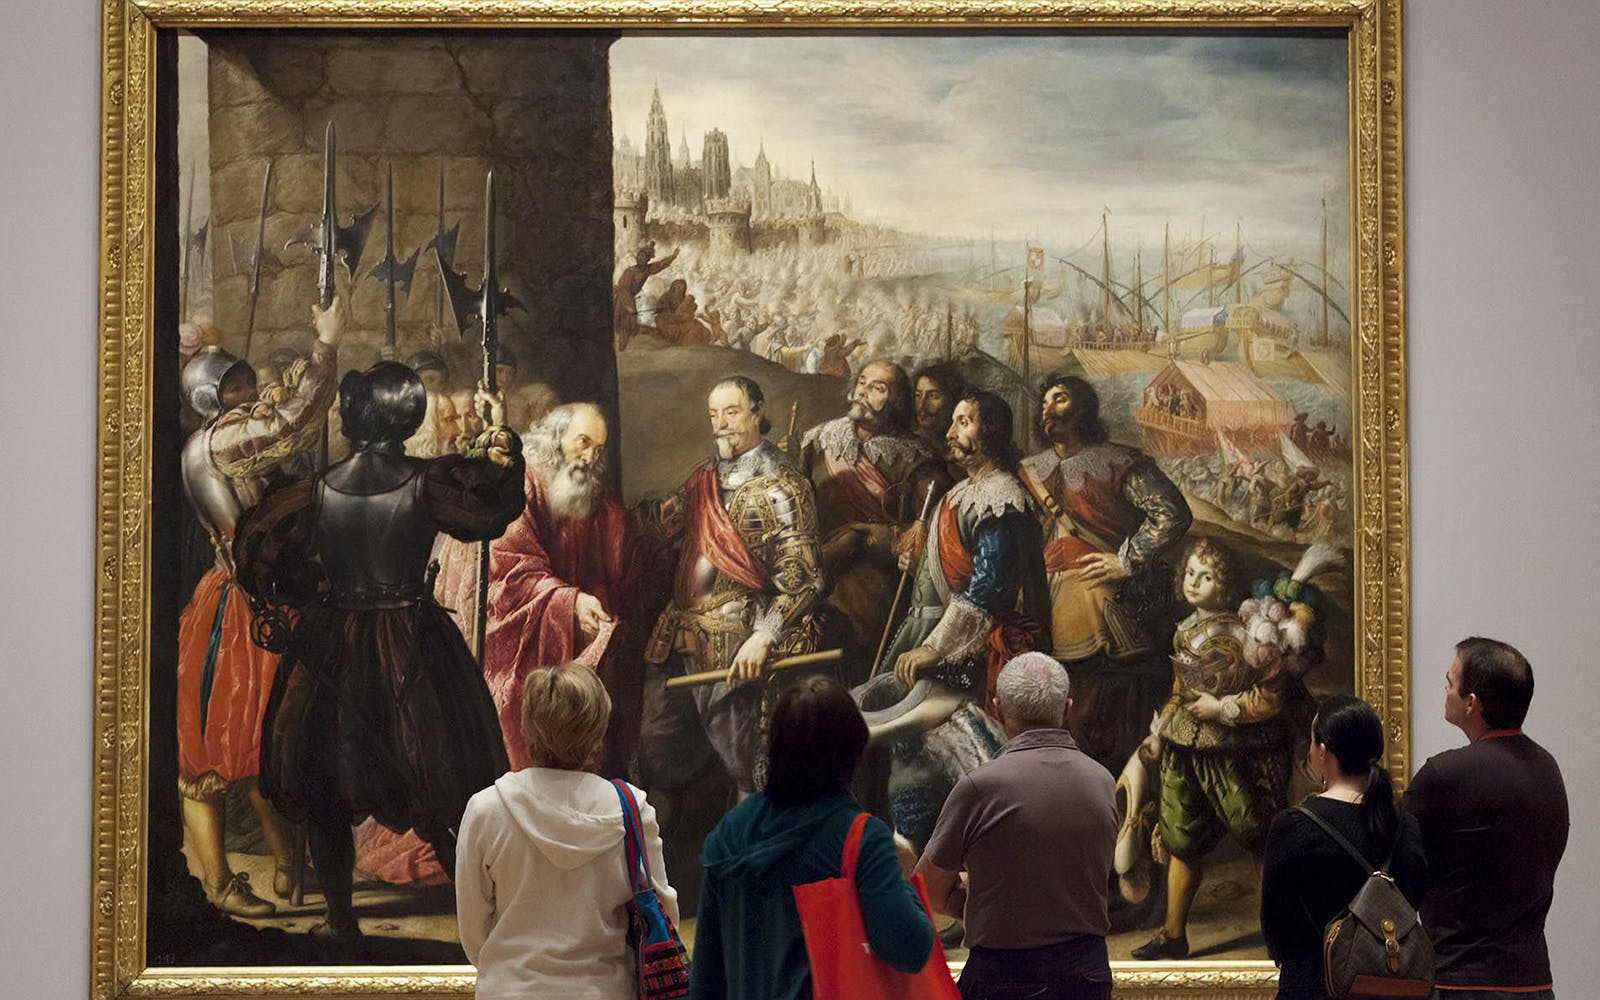 skip the line guided tour tickets to the royal palace of madrid and prado museum-2